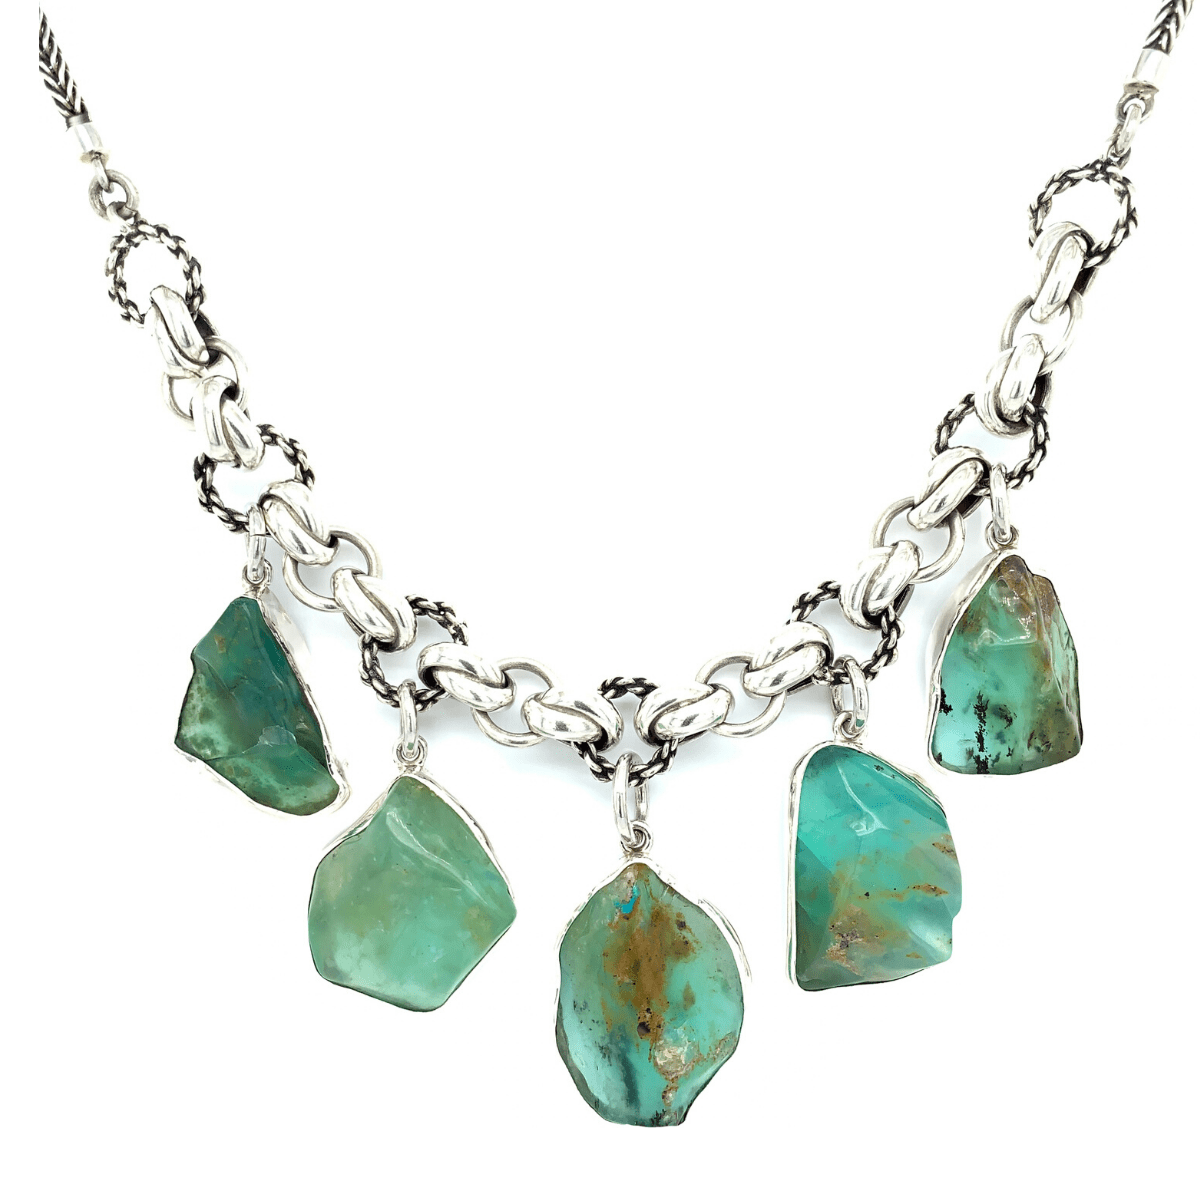 Rough Andean Opals & Sterling Silver Links Necklace - Qinti - The Peruvian Shop